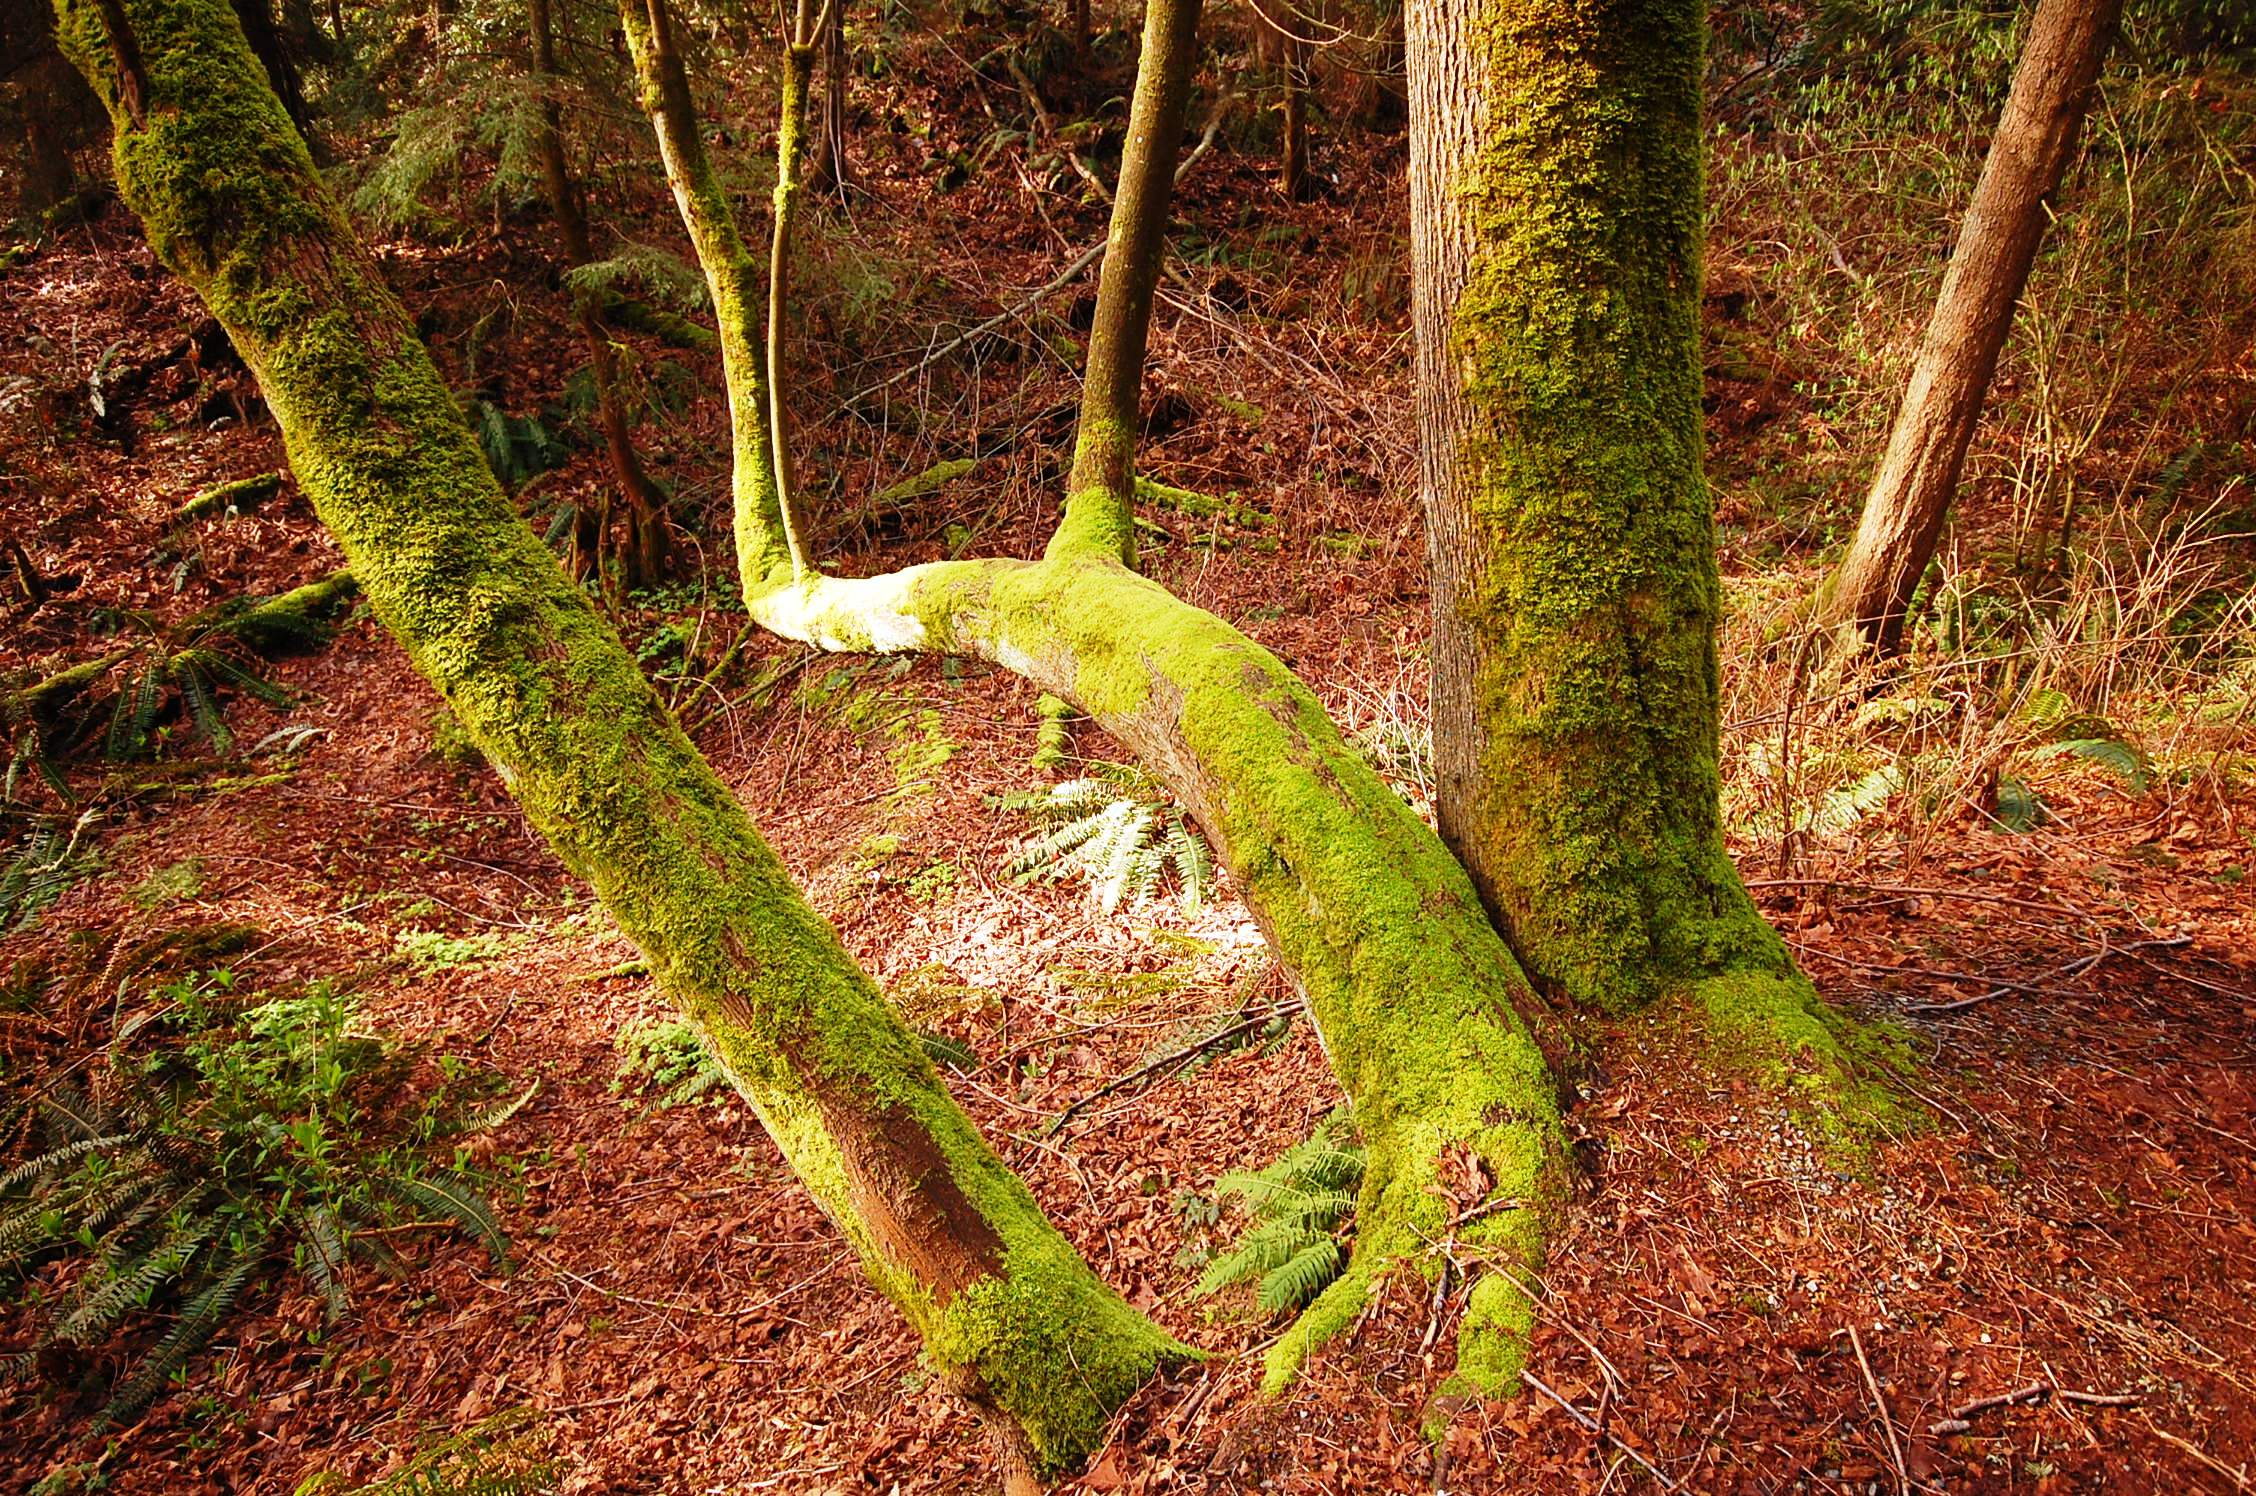 Spring sun filtering through the woods onto a moss covered tree trunk